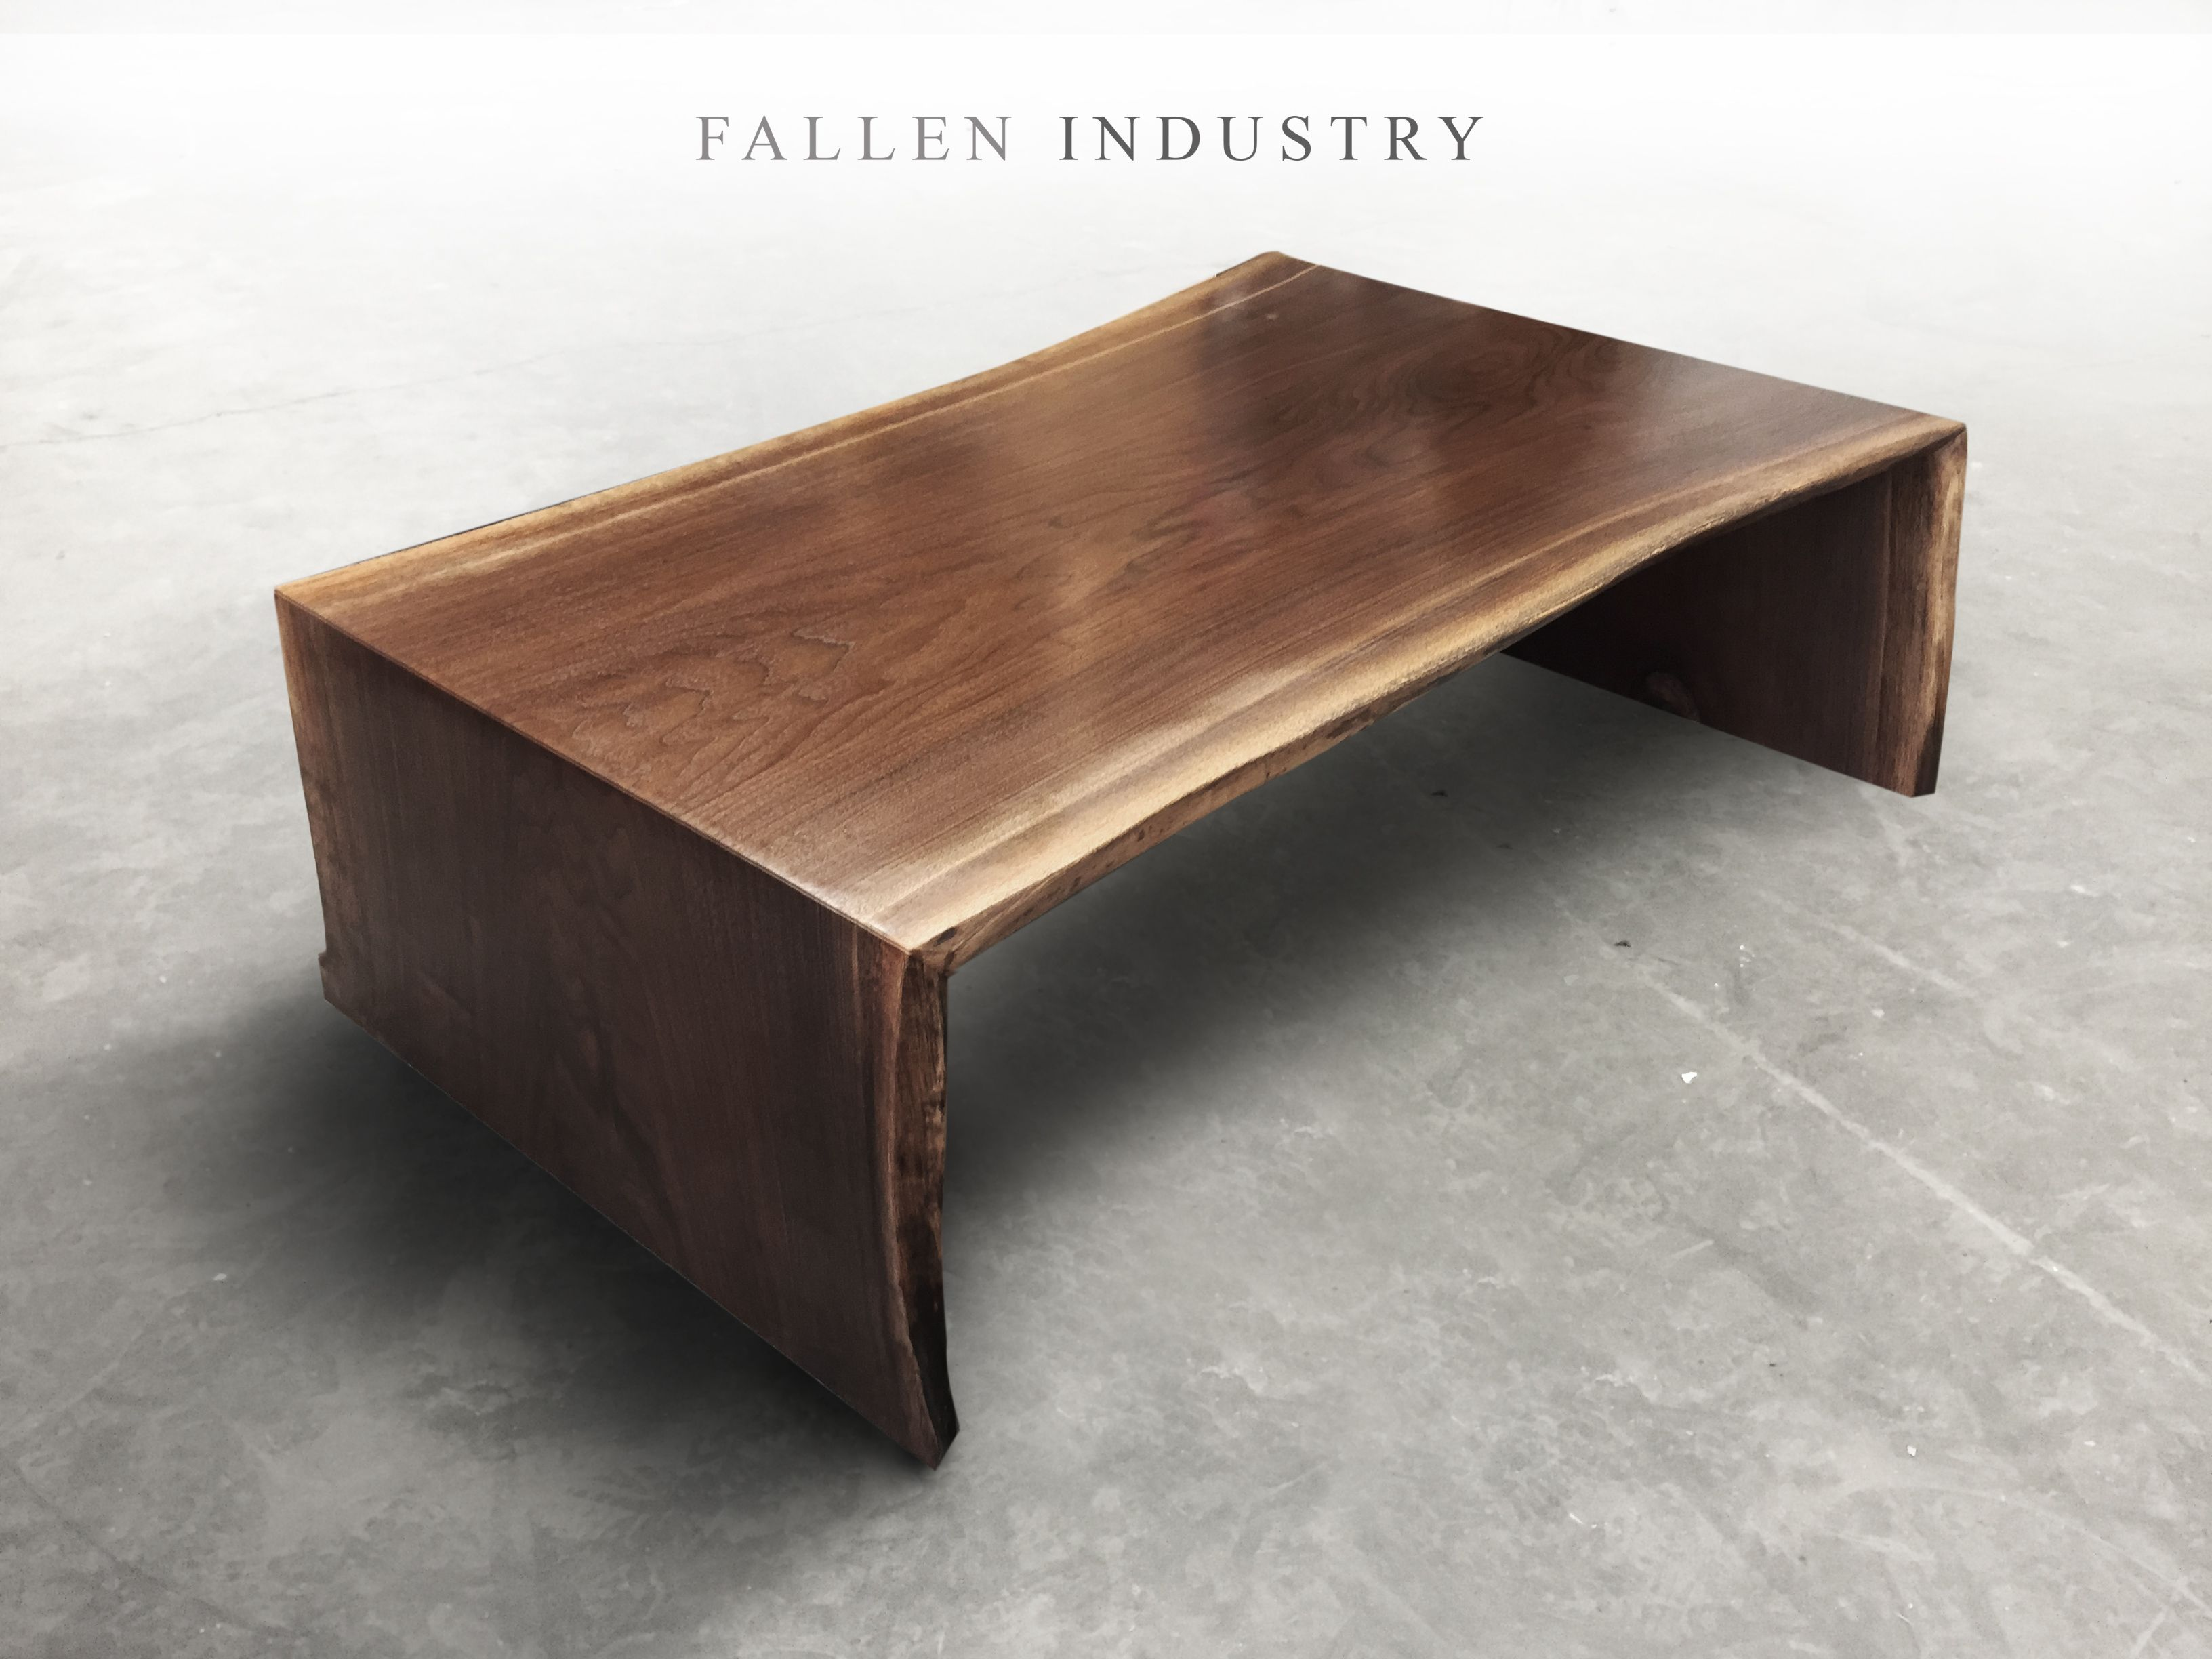 Waterfall Coffee Table Live Edge Custom Built Modern Furniture And Architectural Elements Made From Reclaimed Wood